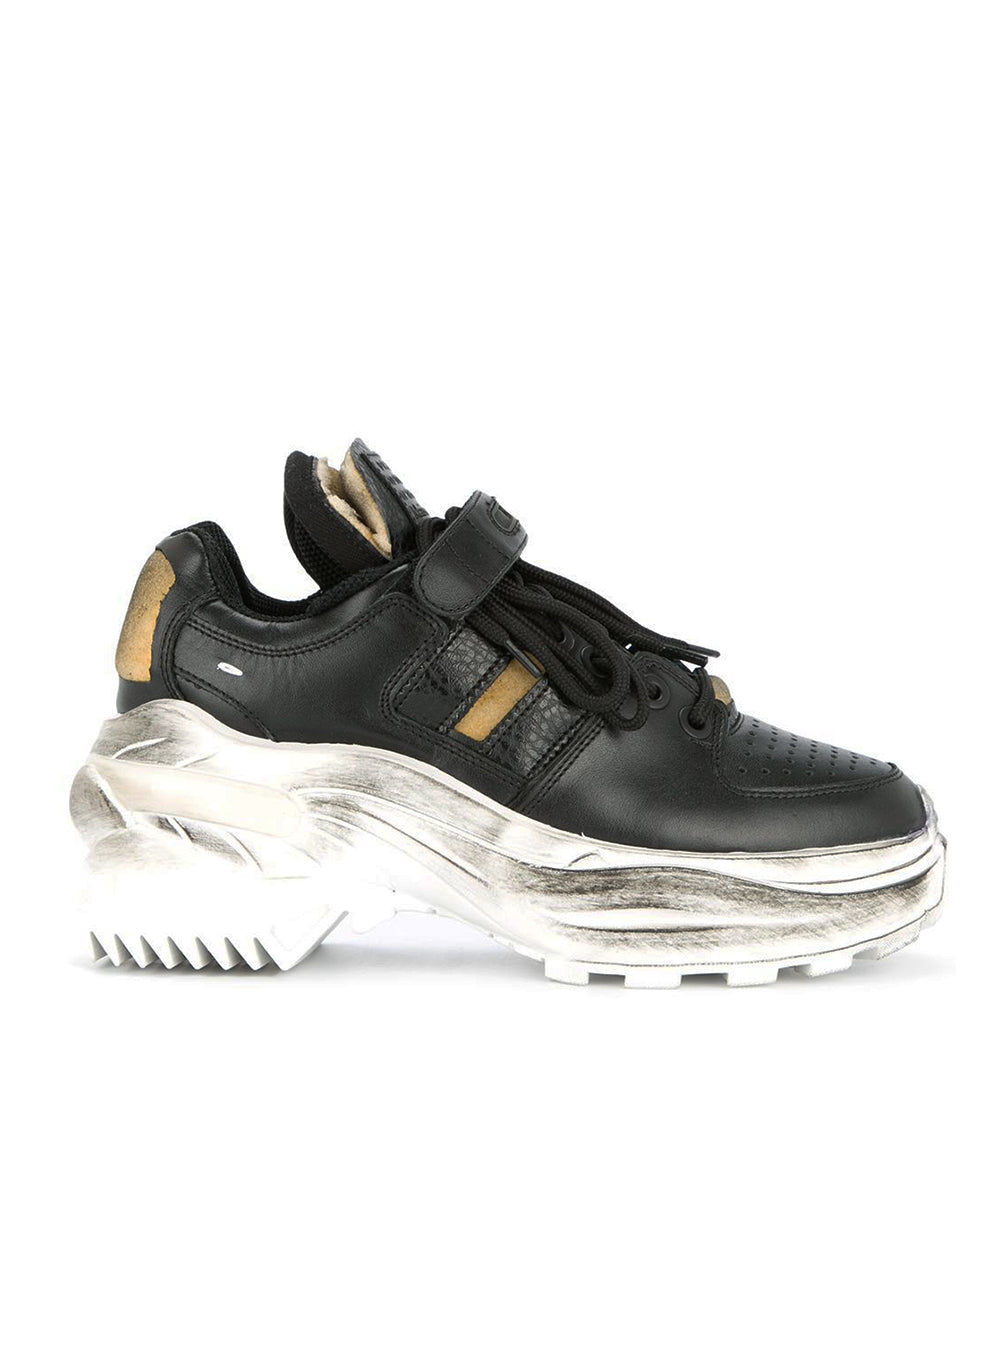 MAISON MARGIELA | Black Leather Platform Sneakers